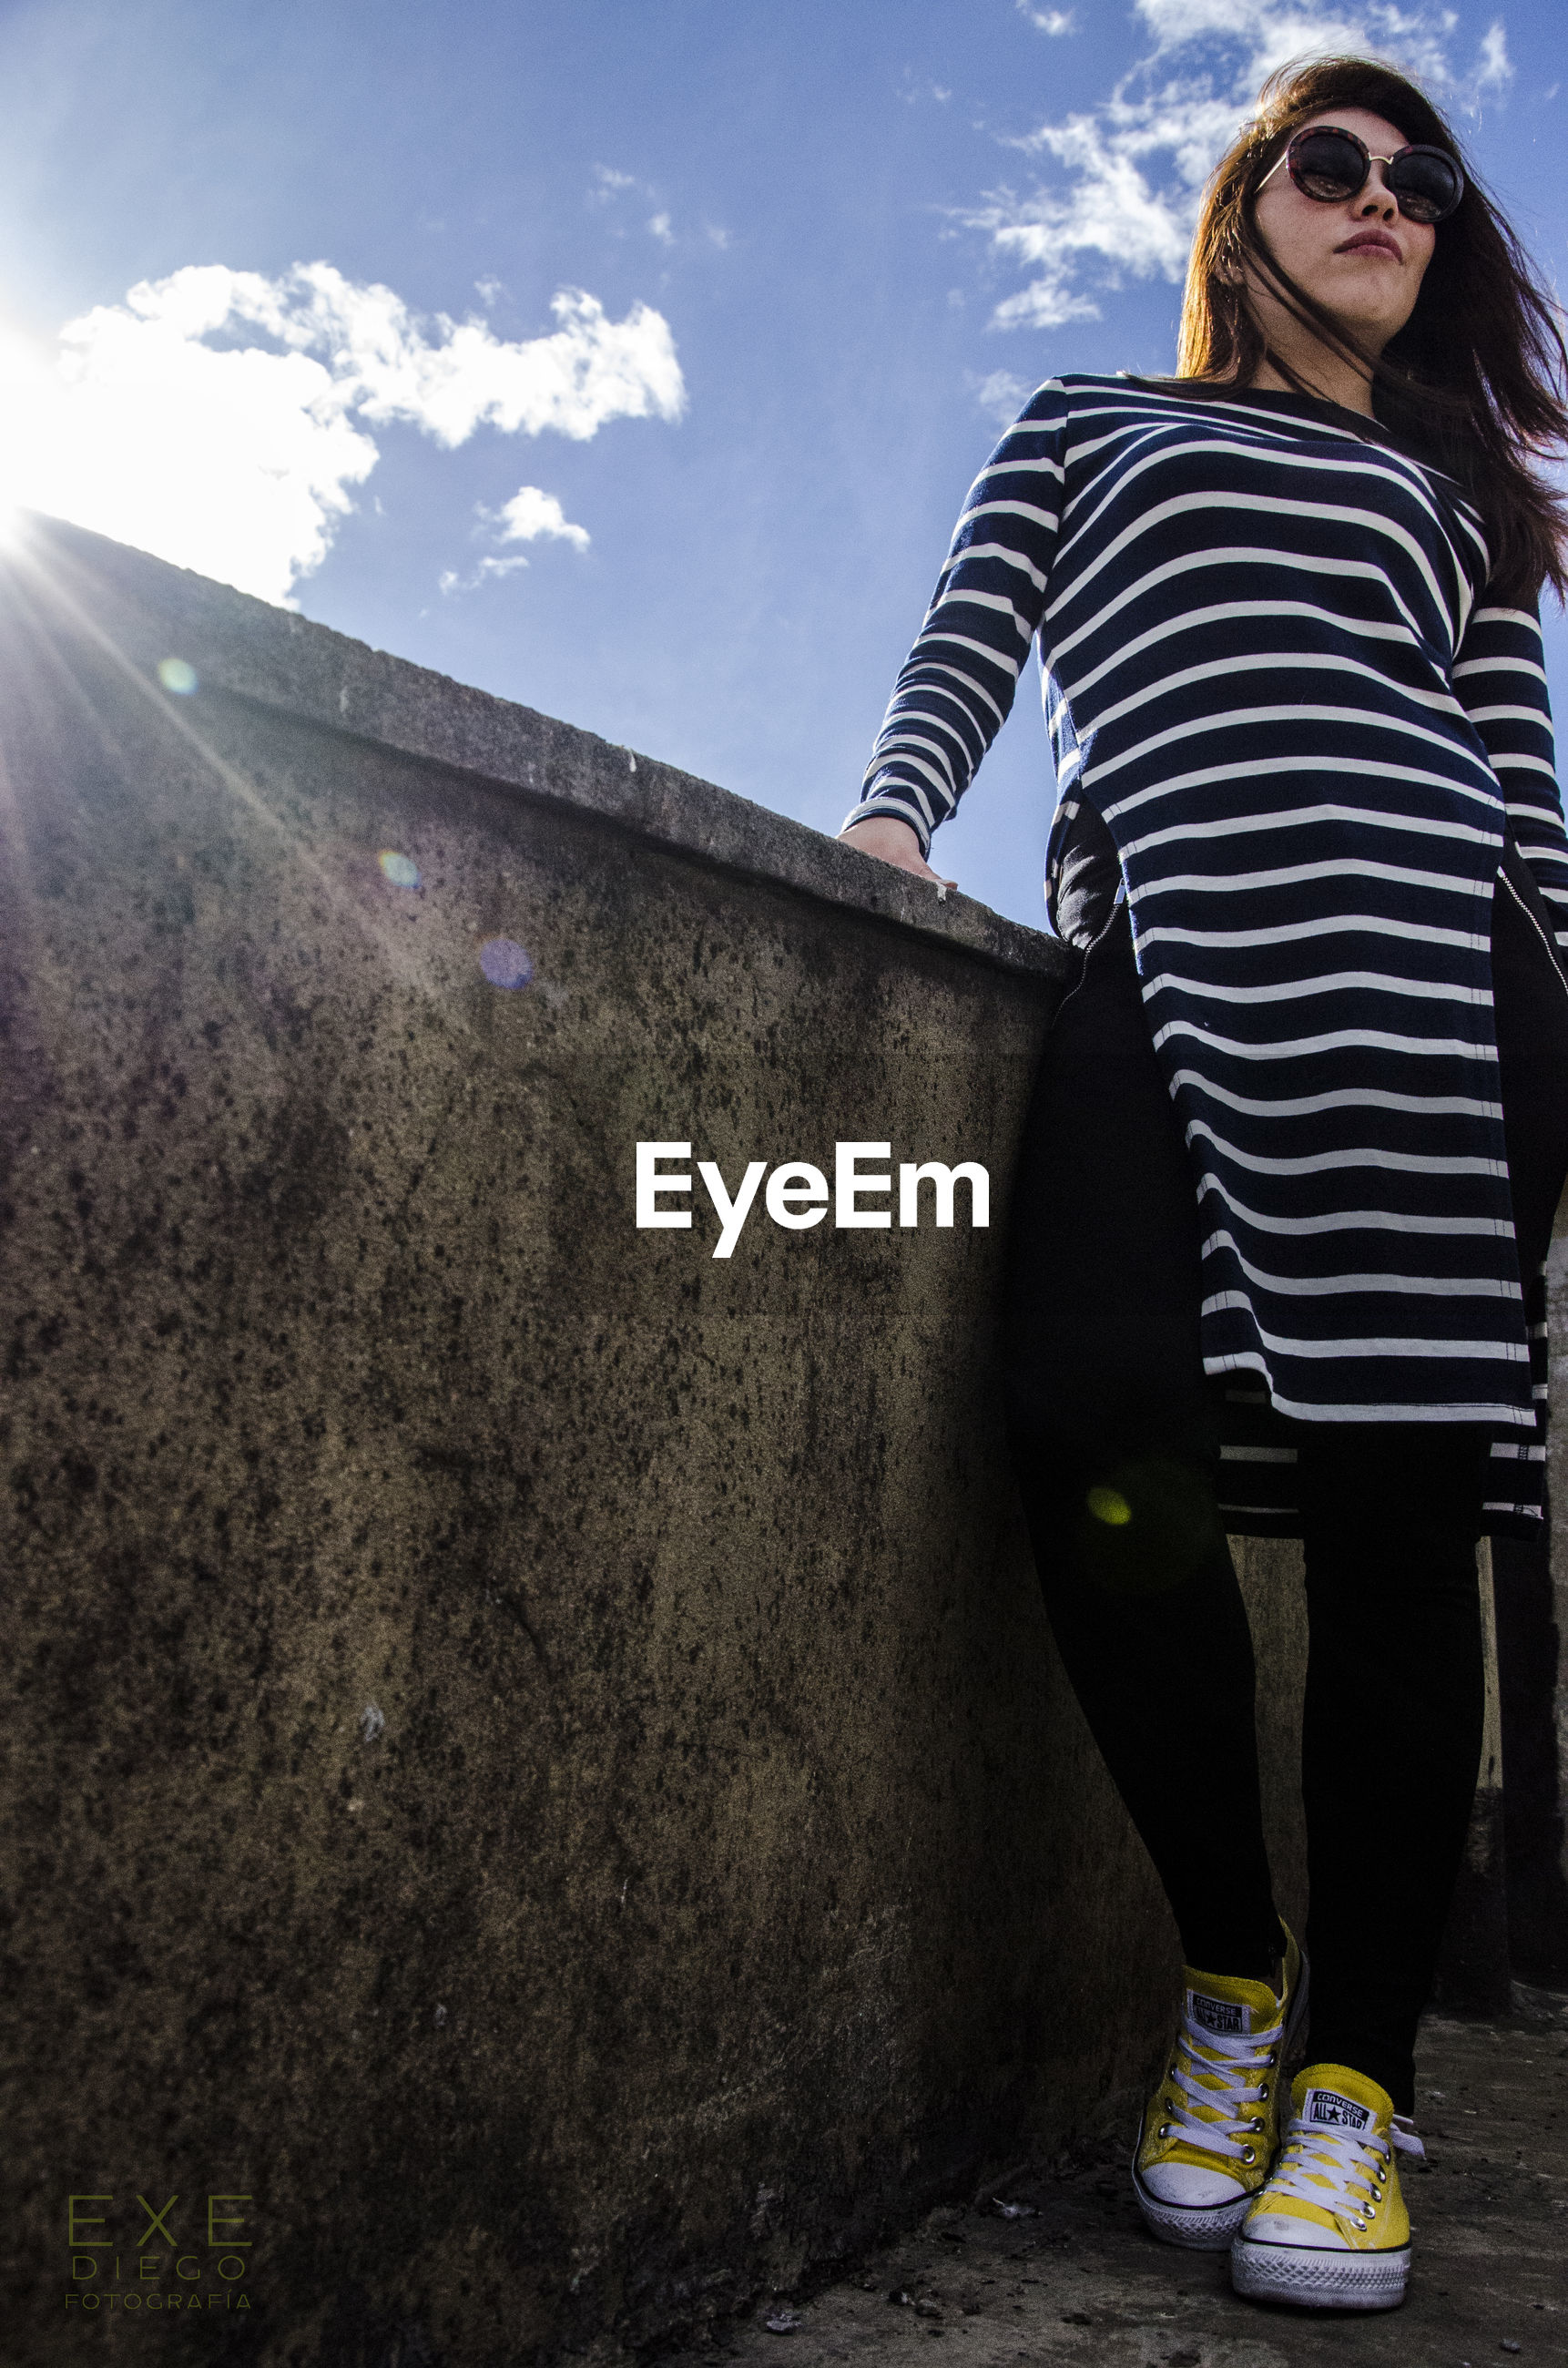 wall - building feature, low angle view, sky, standing, architecture, built structure, casual clothing, lifestyles, cloud, young adult, full length, person, contemplation, outdoors, well-dressed, day